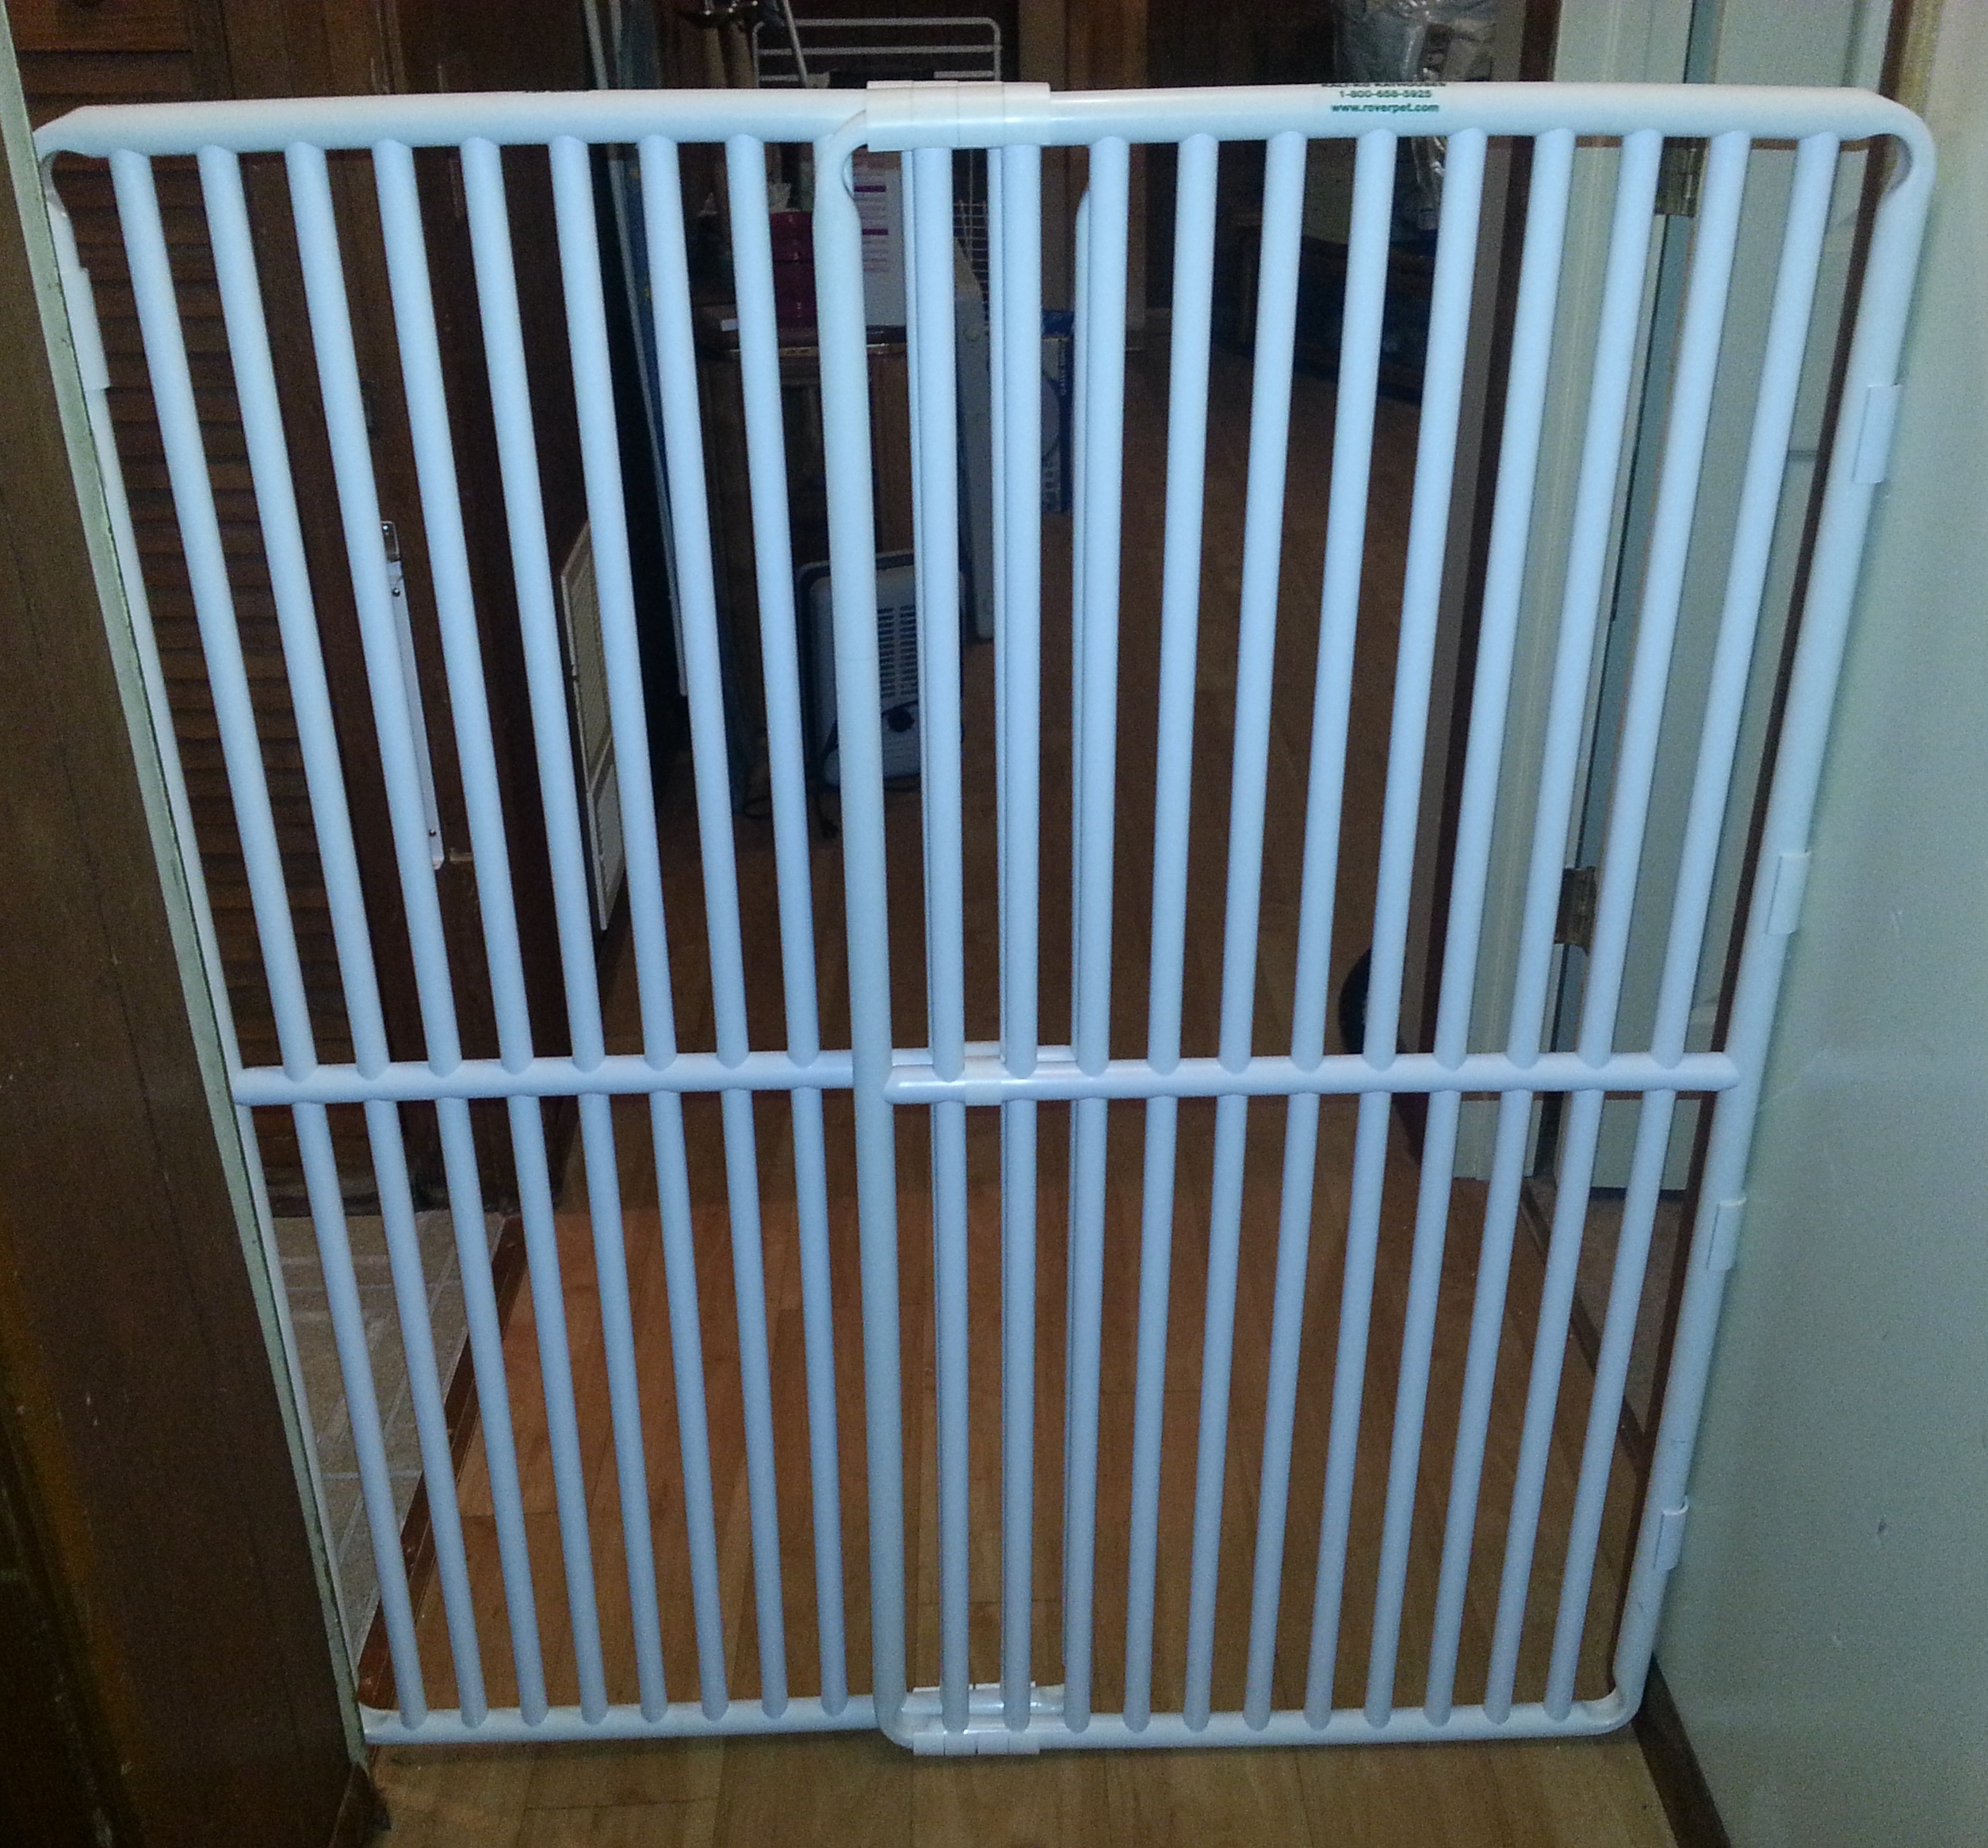 pvc indoor pet gatemade in the usa pet gate